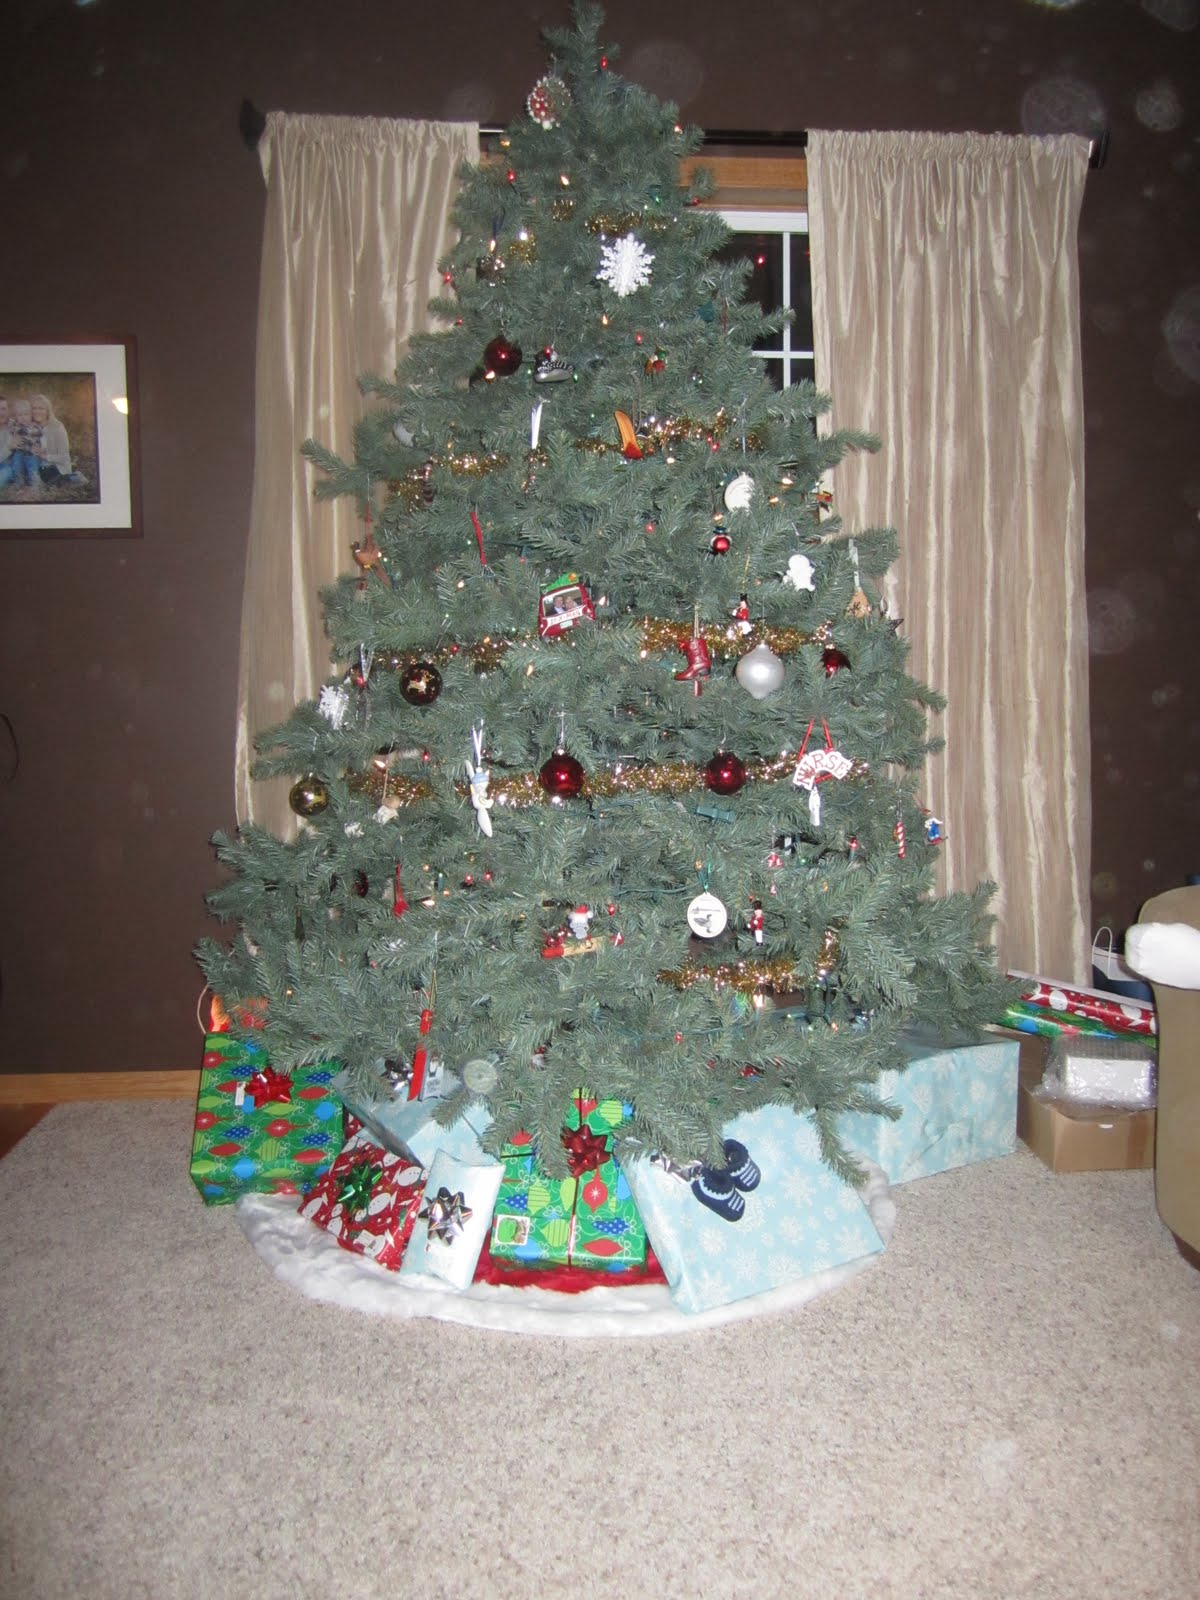 Christmas Decorations At Haskins : The haskins family month belly picture christmas is